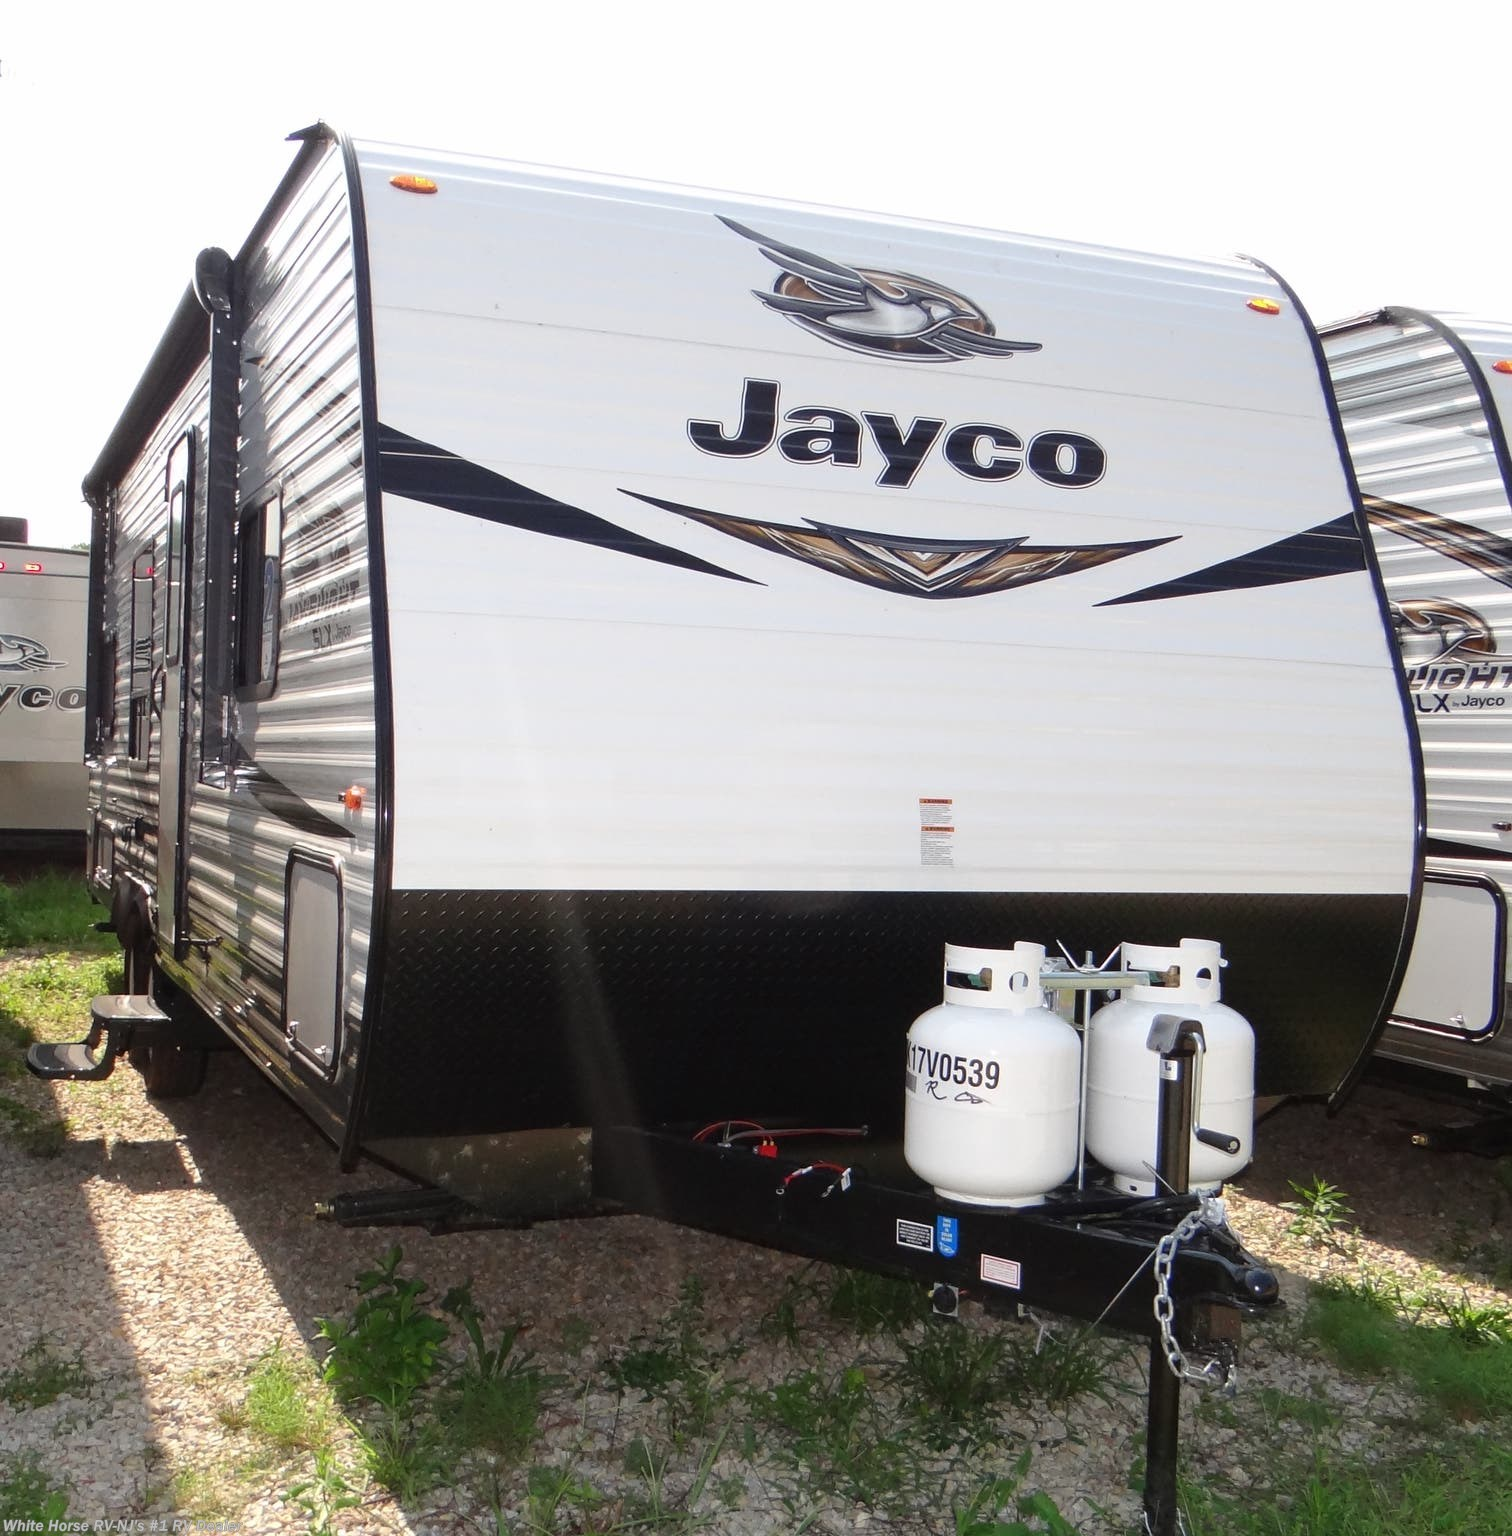 Double Bunks For Sale 2019 Jayco Rv Jay Flight Slx 264bhw Front Queen W Corner Double Bunks For Sale In Williamstown Nj 08094 J12153